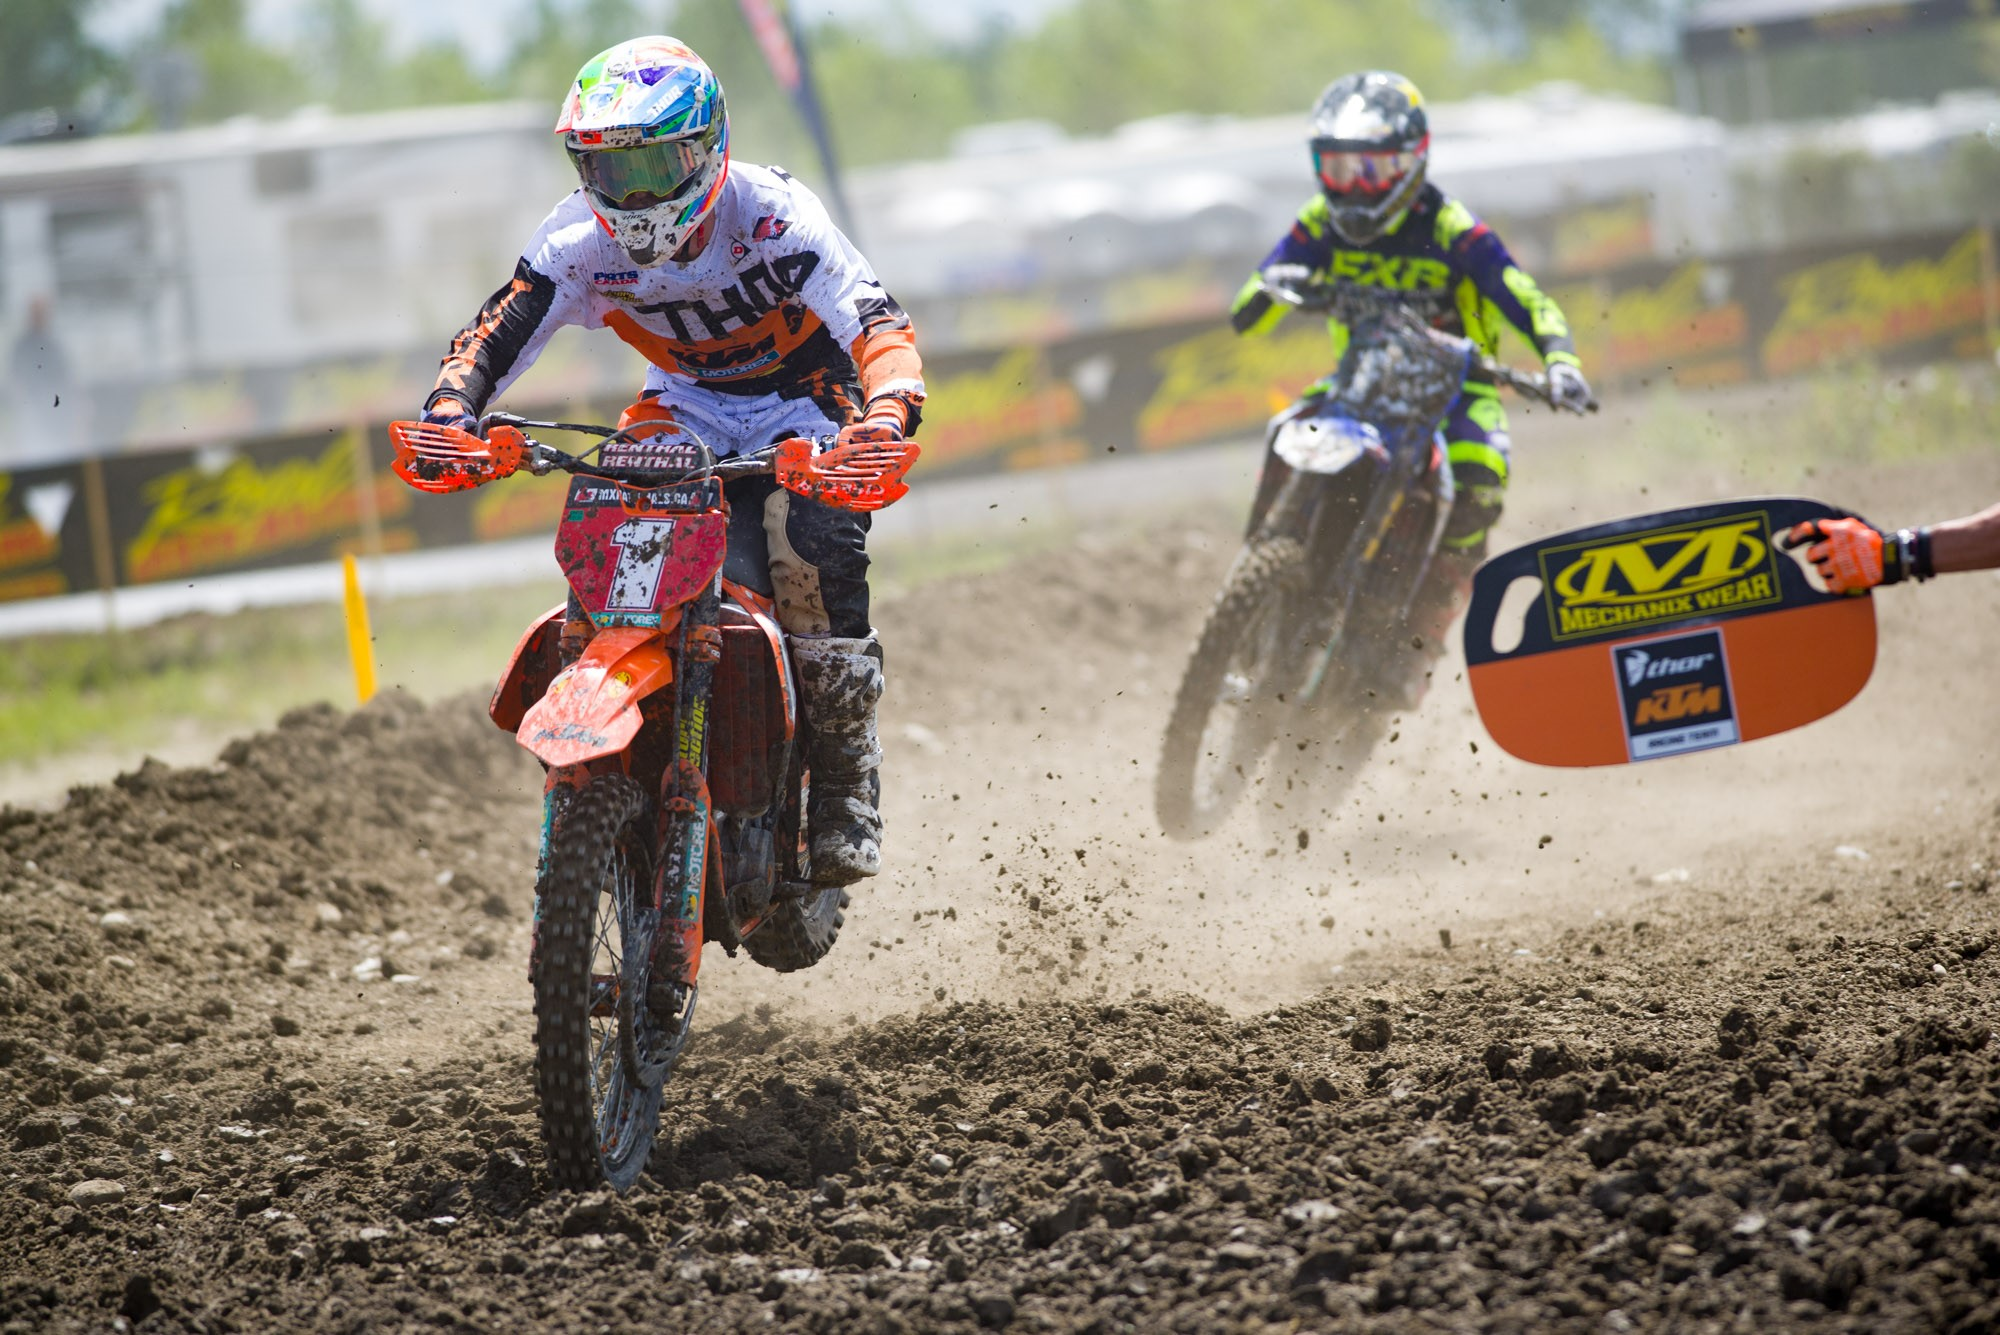 KTM Canada Thor Racing's Cole Thompson will leave Calgary with the red plate still on his motorcycle.